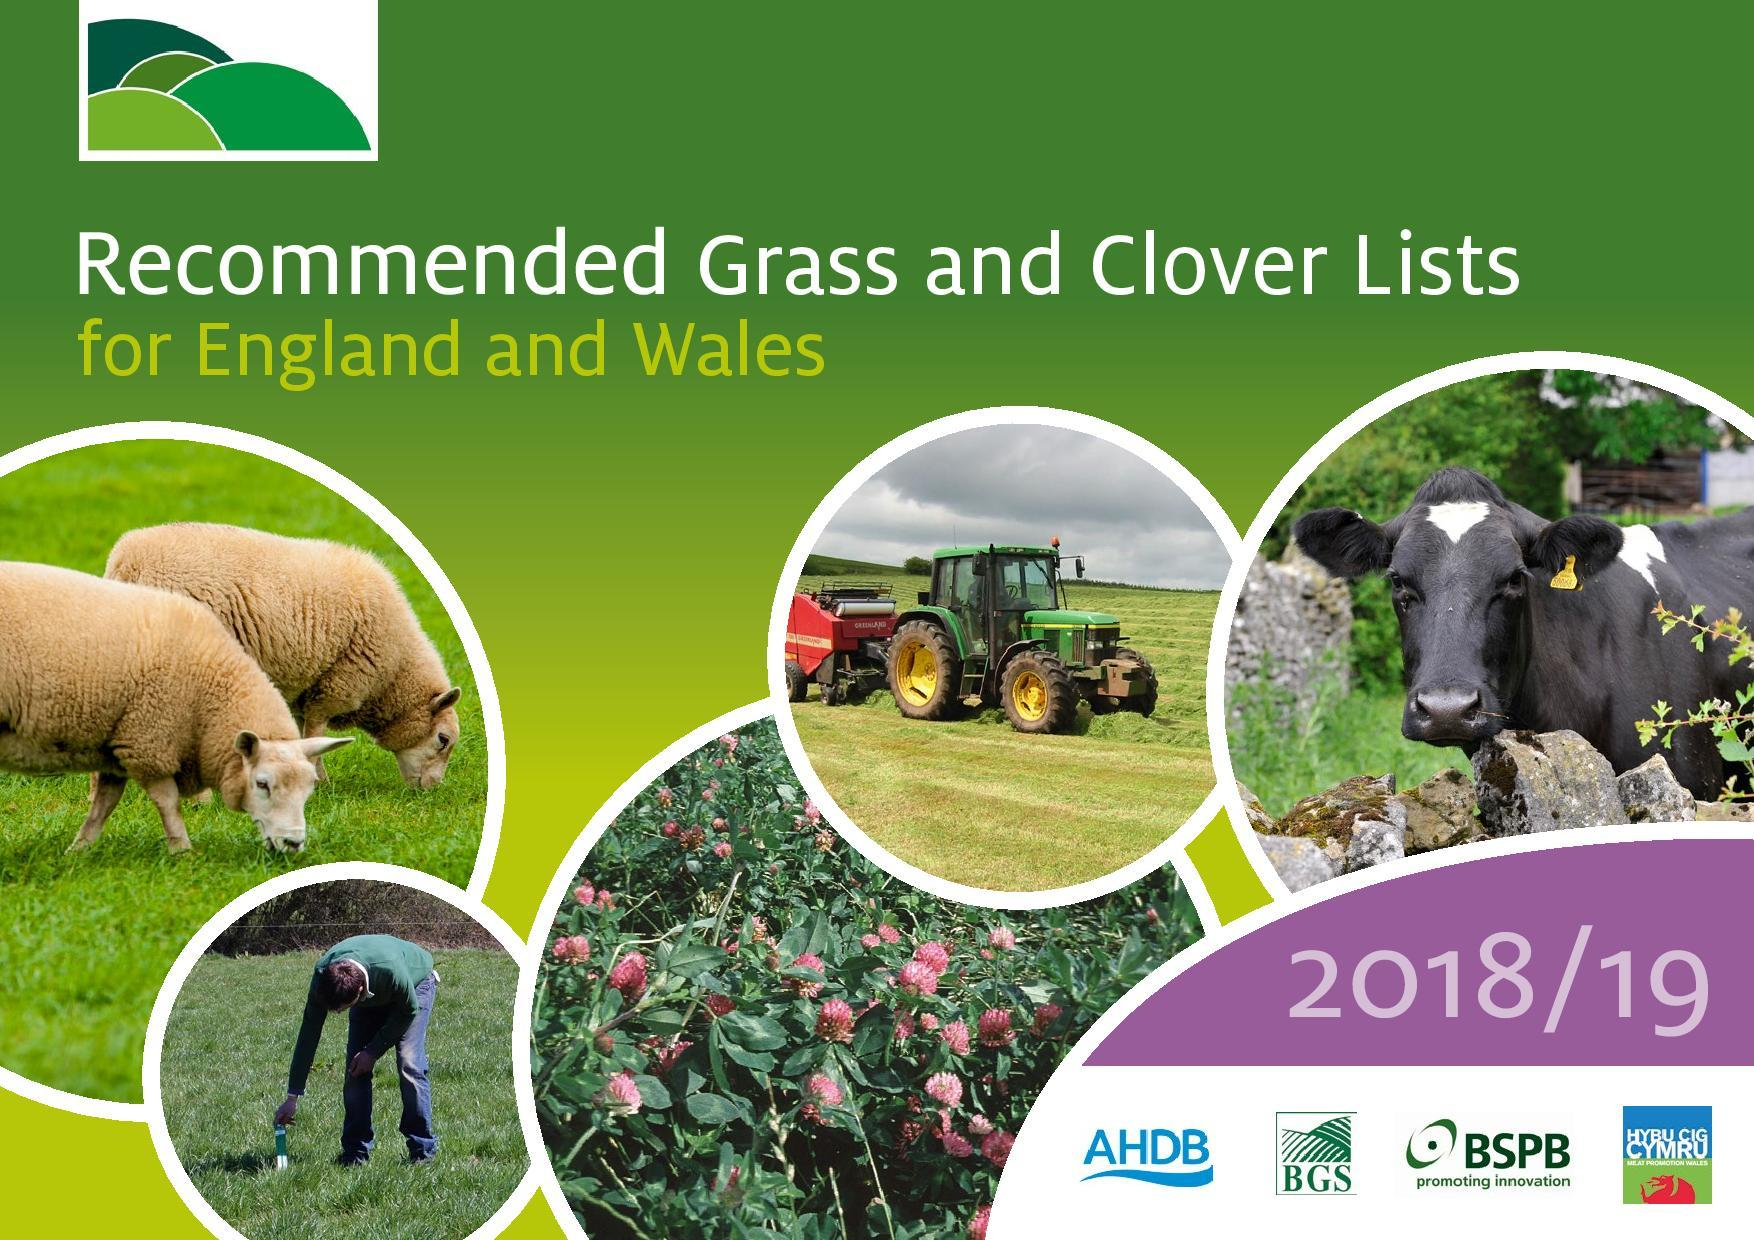 The cover of this year's Recommended Grass and Clover List.